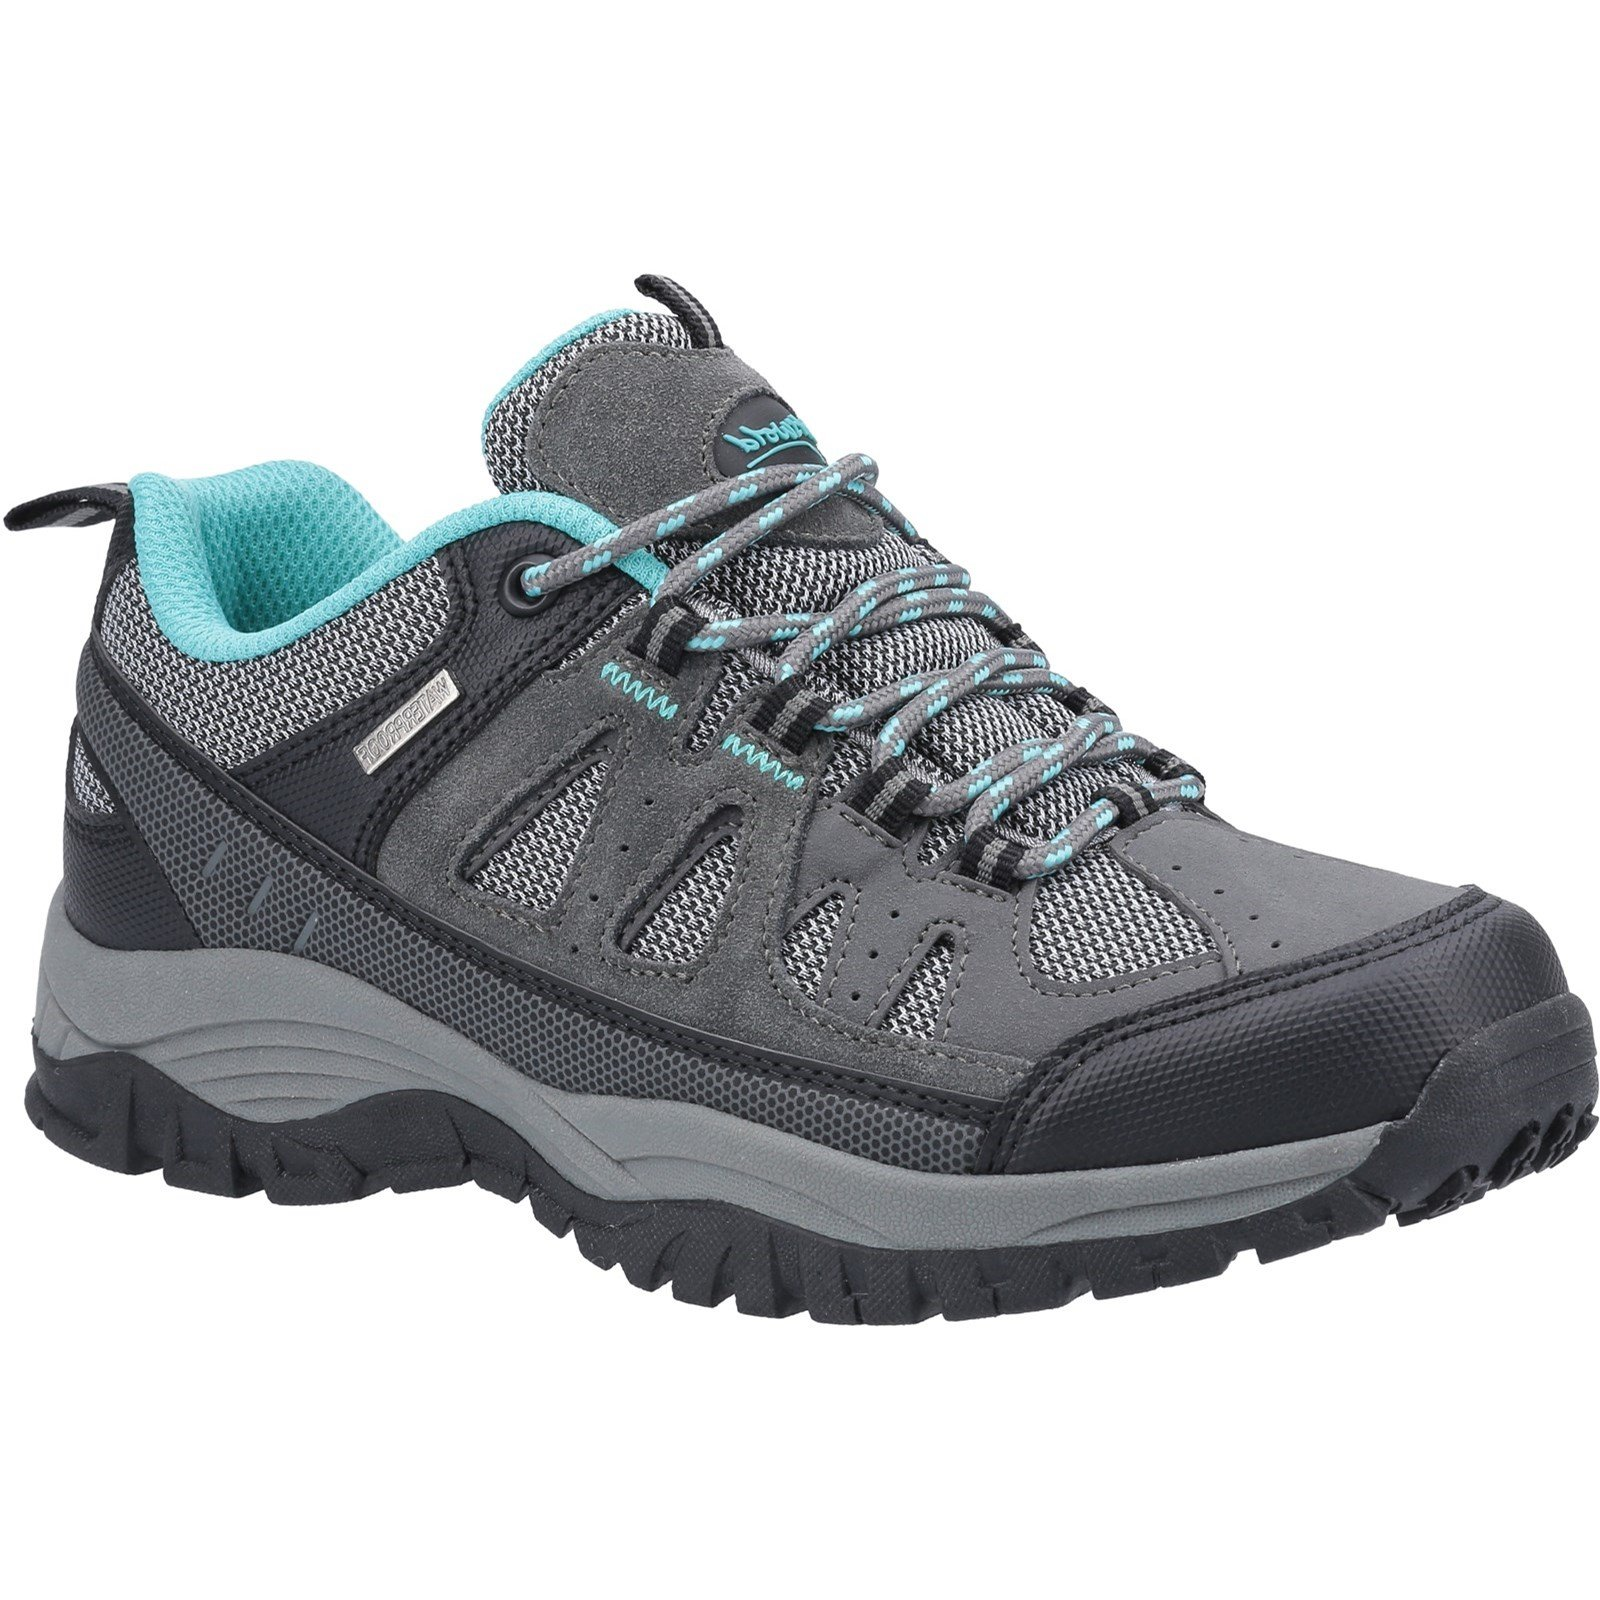 Cotswold Women's Maisemore Low Hiking Boot Grey 32988 - Grey 4